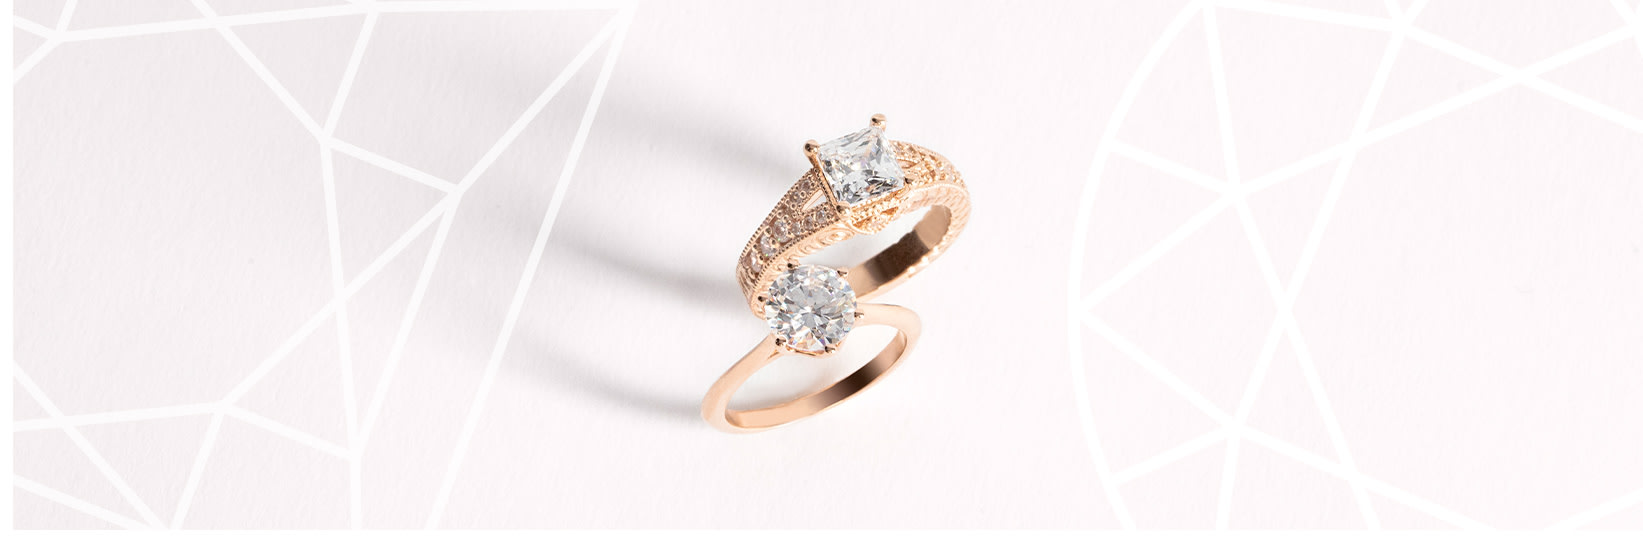 A princess cut engagement ring and a round cut engagement ring side-by-side